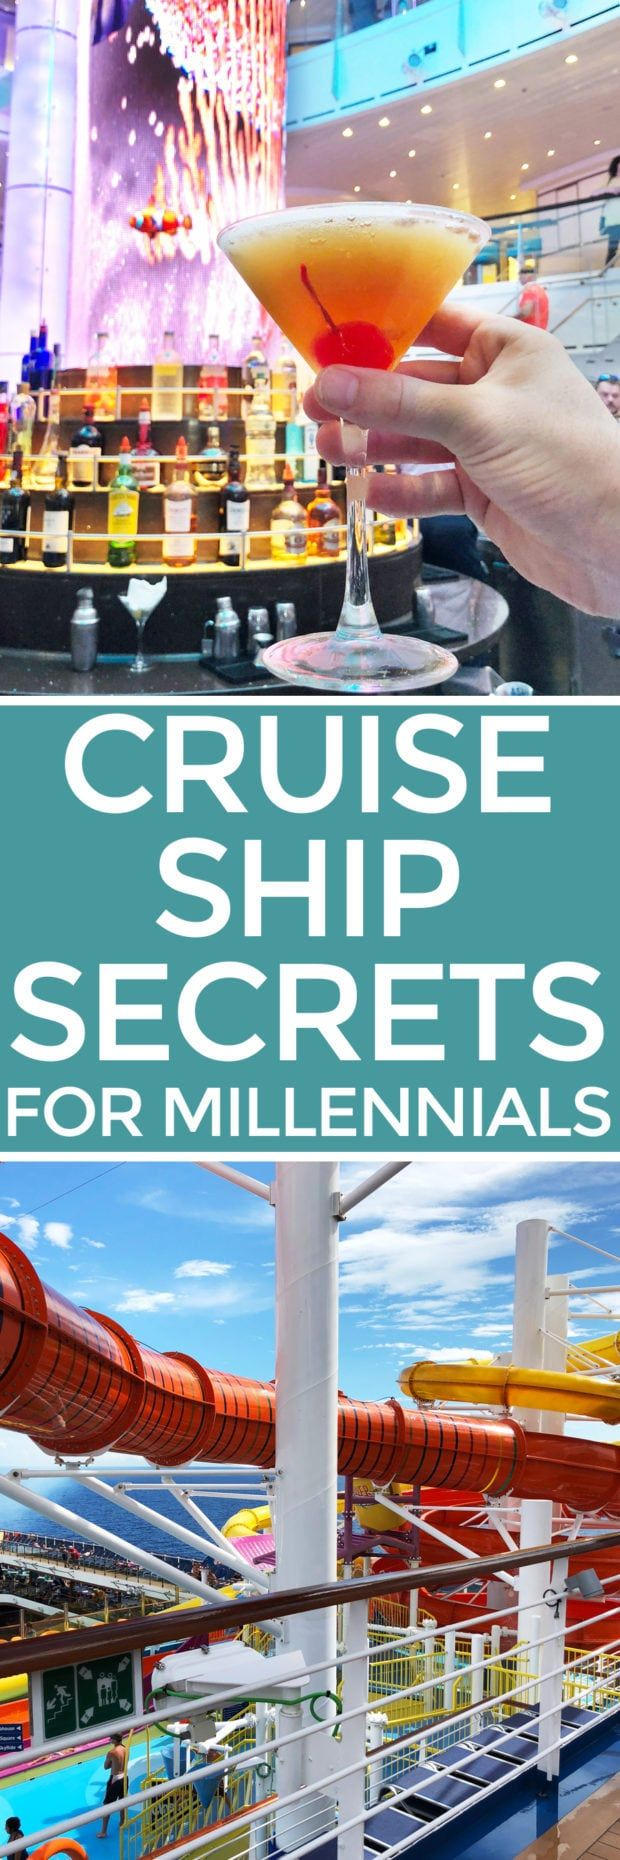 When you want to get the most out of your vacation at sea, look no further than my Cruise Ship Secrets for Millennials. Whether you have never been cruising before or are a seasoned pro, my tips and tricks to making the most out of your cruise on the Carnival Vista are going to open your eyes to so much more than simply lounging by the pool and going on excursions.  @carnivalcruise | cakenknife.com #cruisingcarnival #travel #cruise